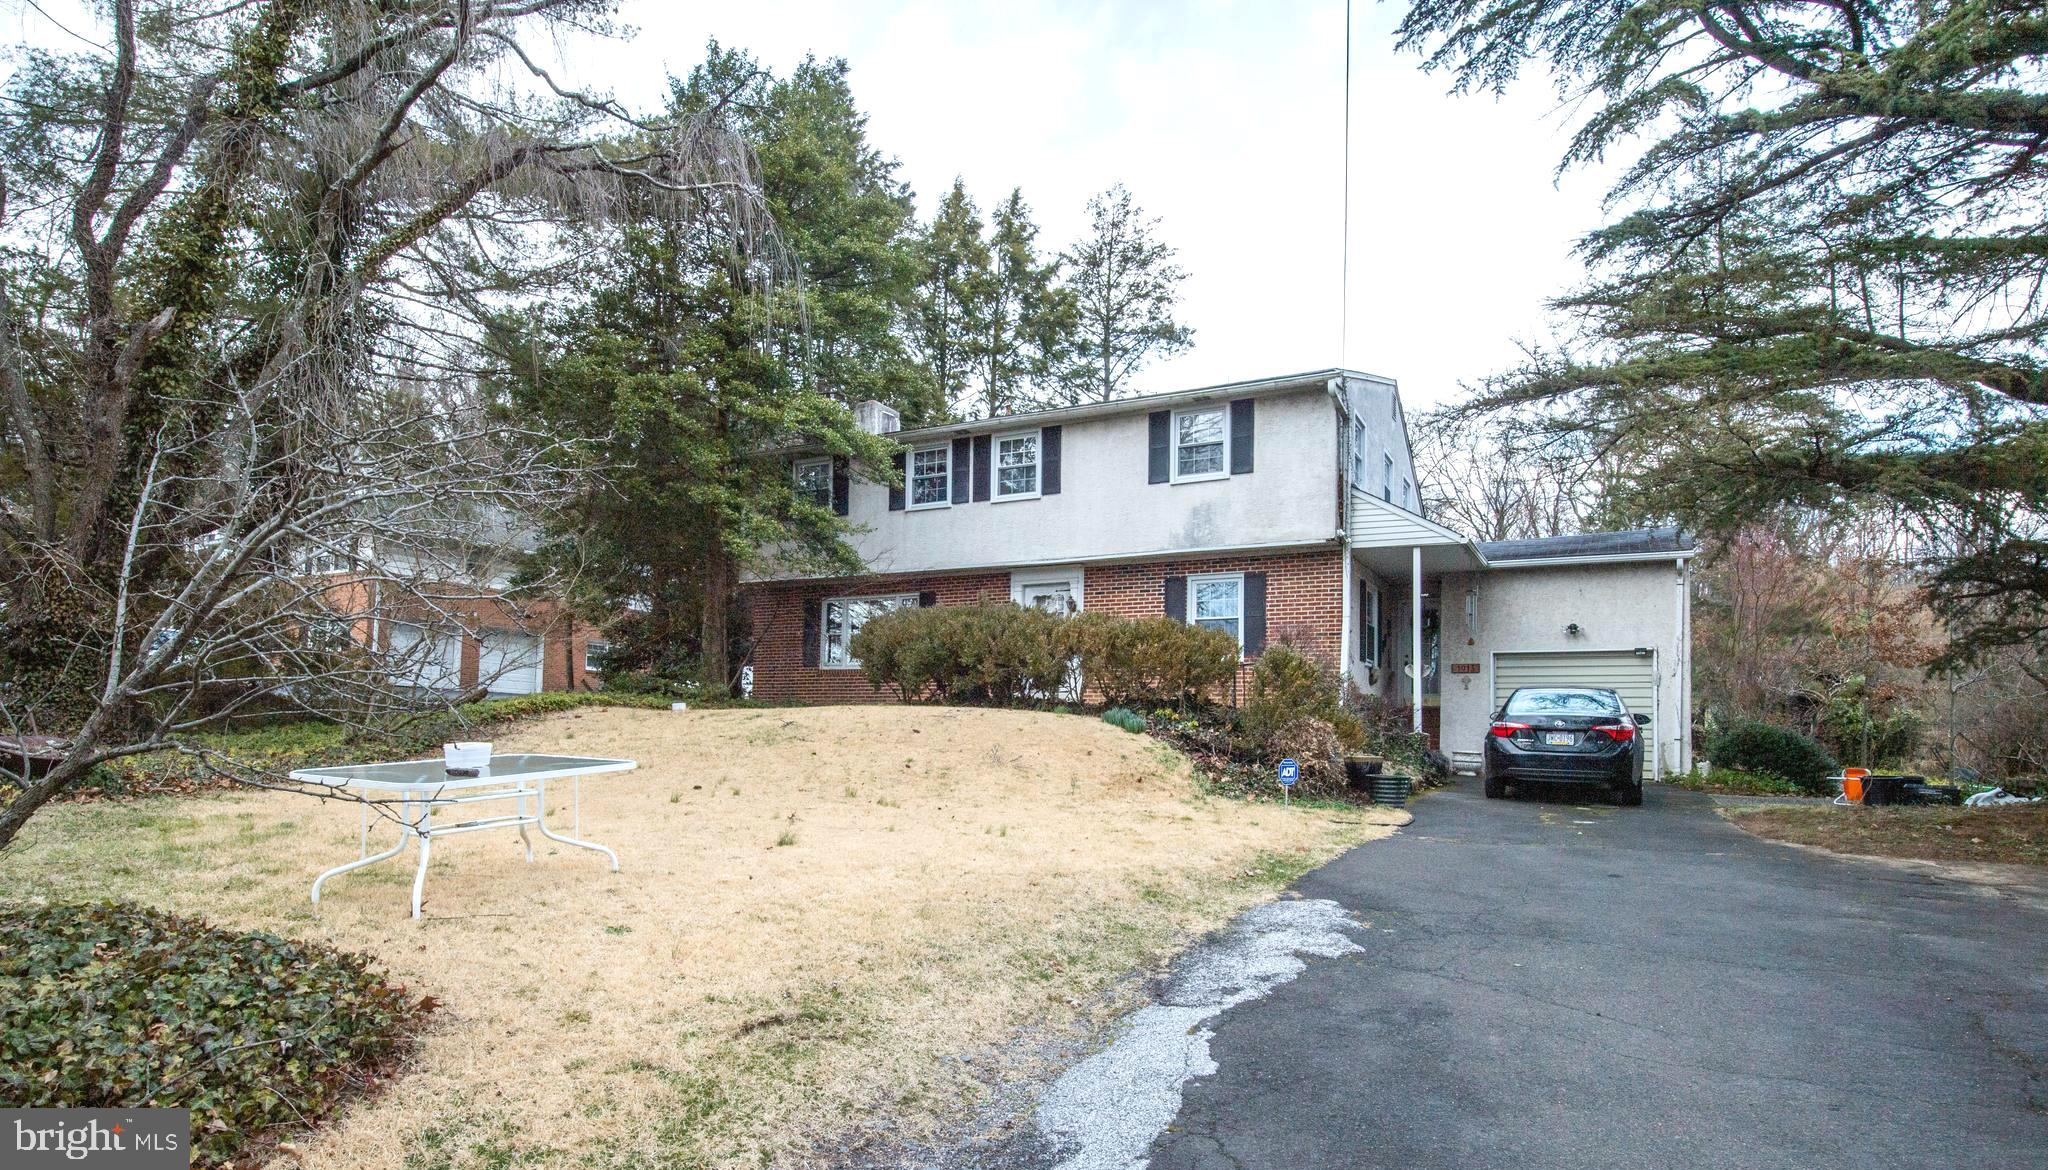 1913 OLD WELSH ROAD, ABINGTON, PA 19001